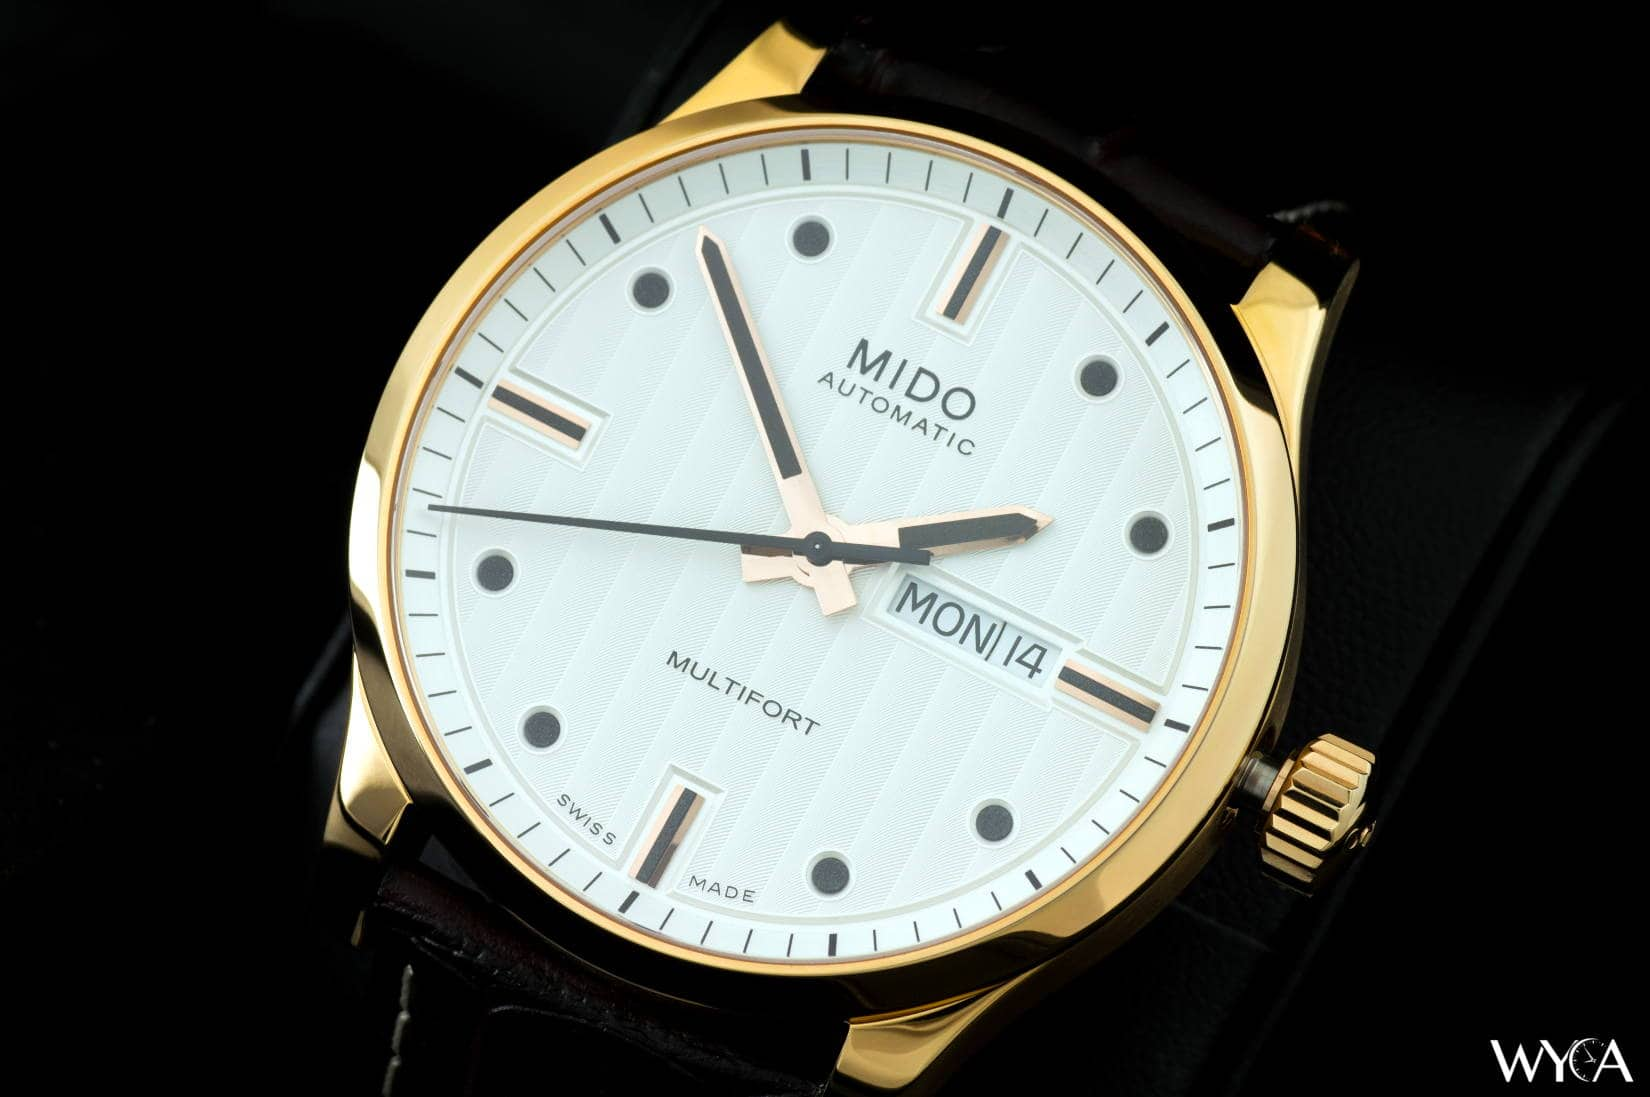 Mido Multifort Review